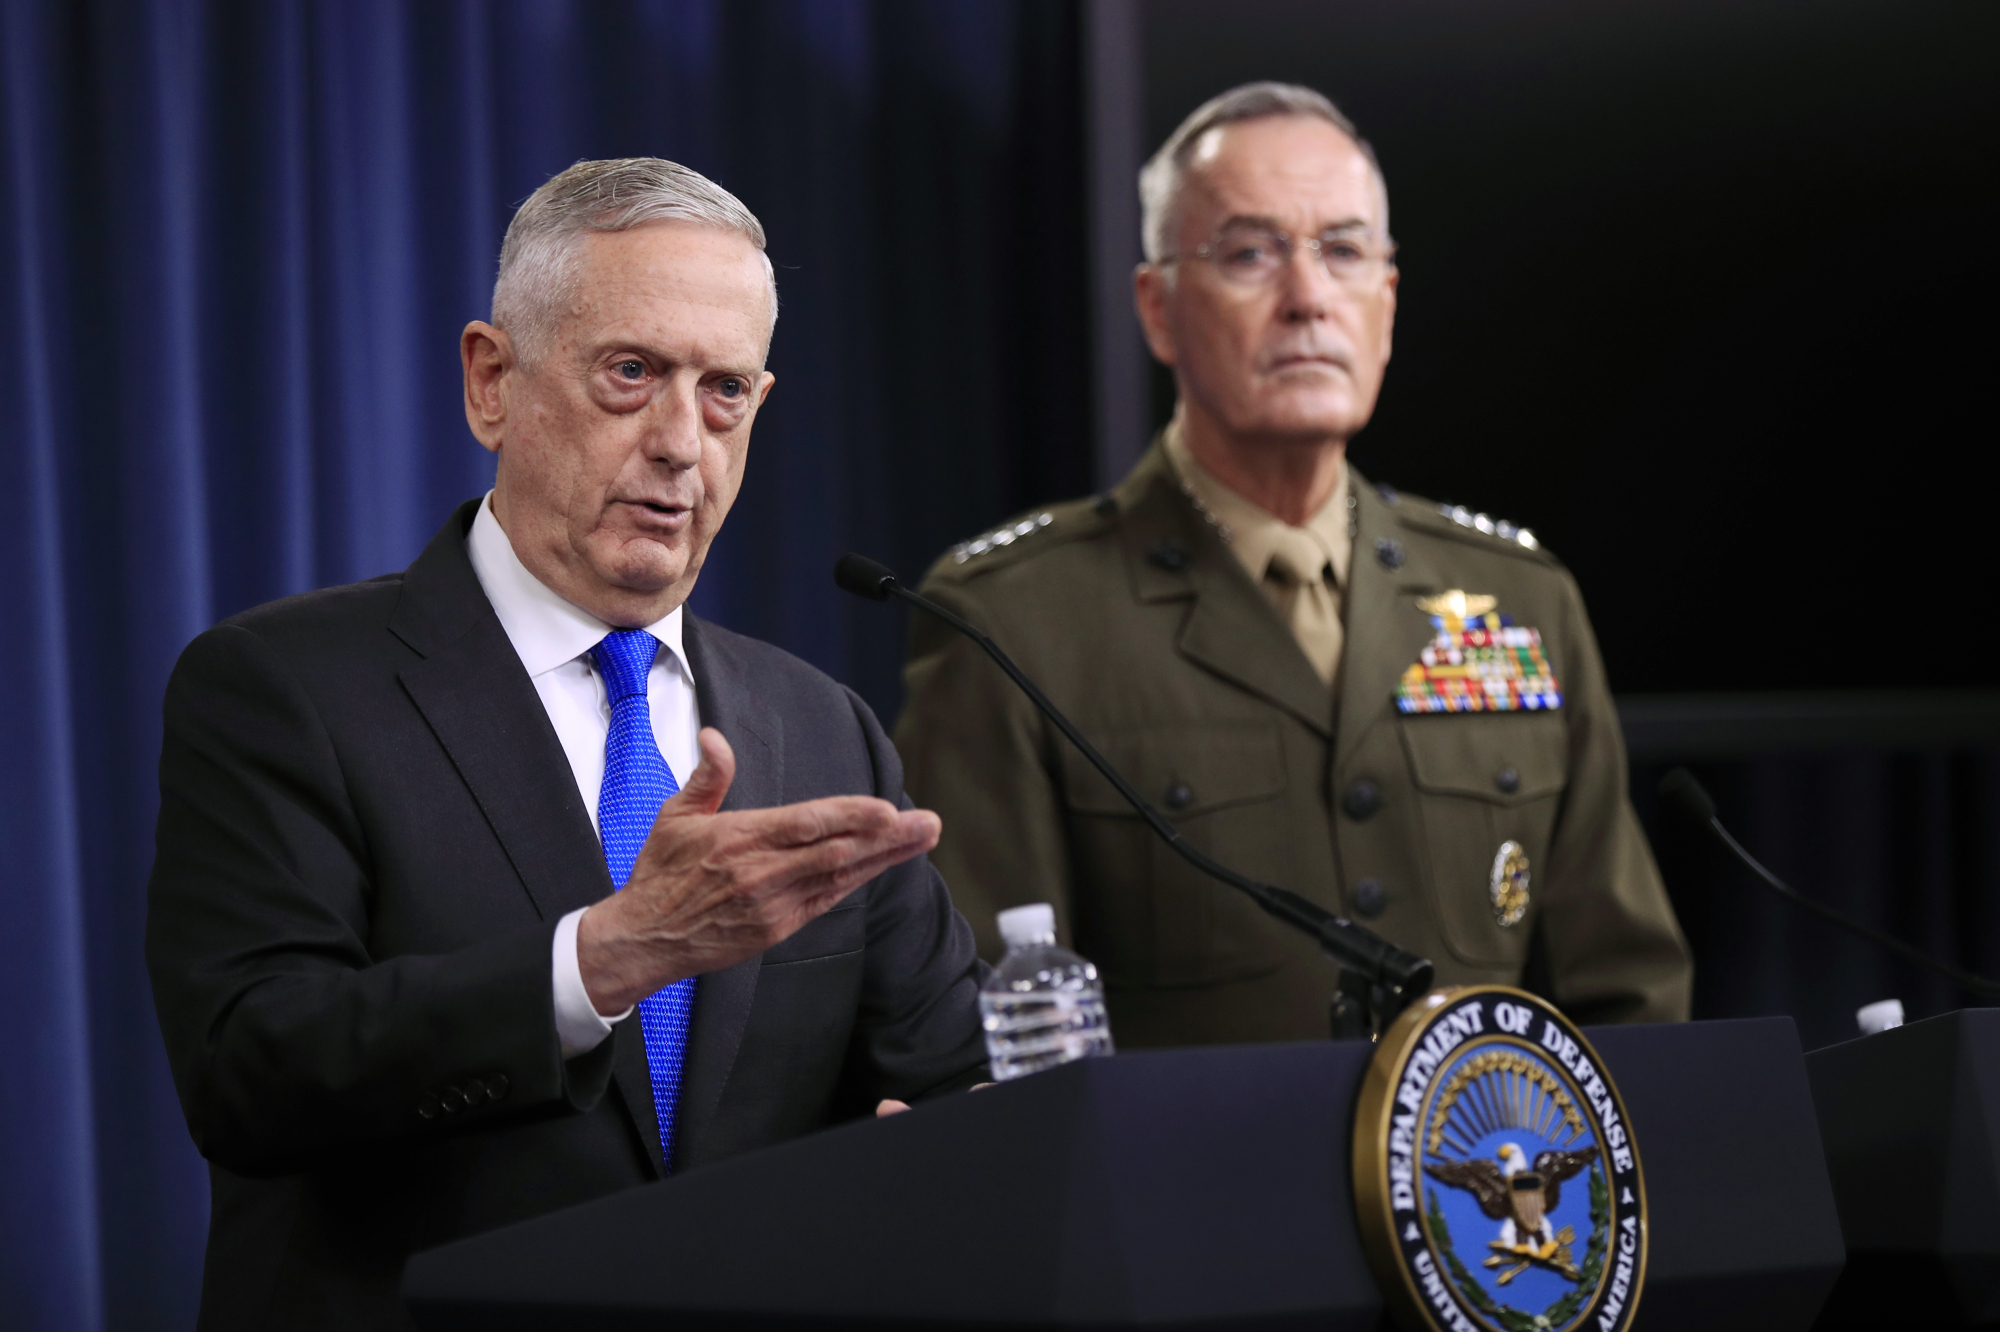 Secretary of Defense Jim Mattis (left) and Chairman of the Joint Chiefs of Staff Marine Gen. Joseph Dunford speak to reporters during a news conference at the Pentagon Tuesday in Washington. | MANUEL BALCE CENETA / VIA AP